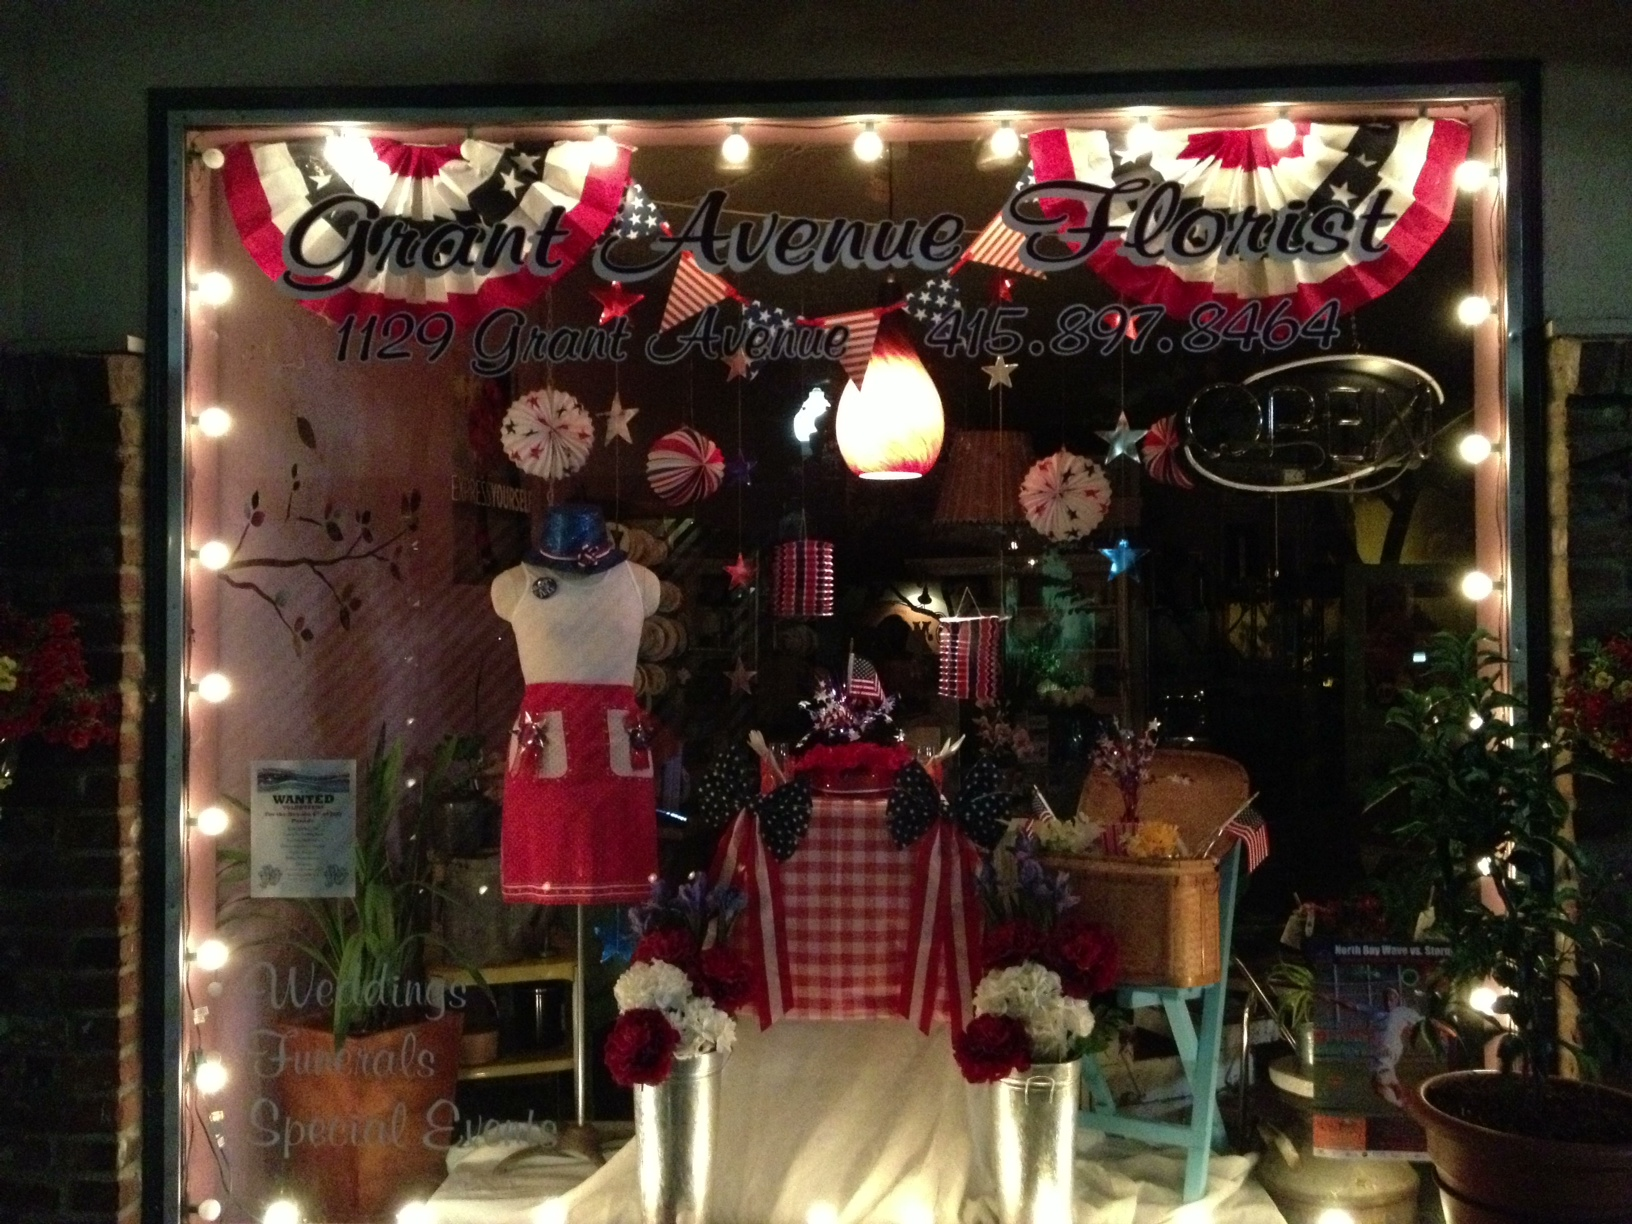 Representative 4th of july flag-scarf and a teddy bear are the main elements that blooms this window display.